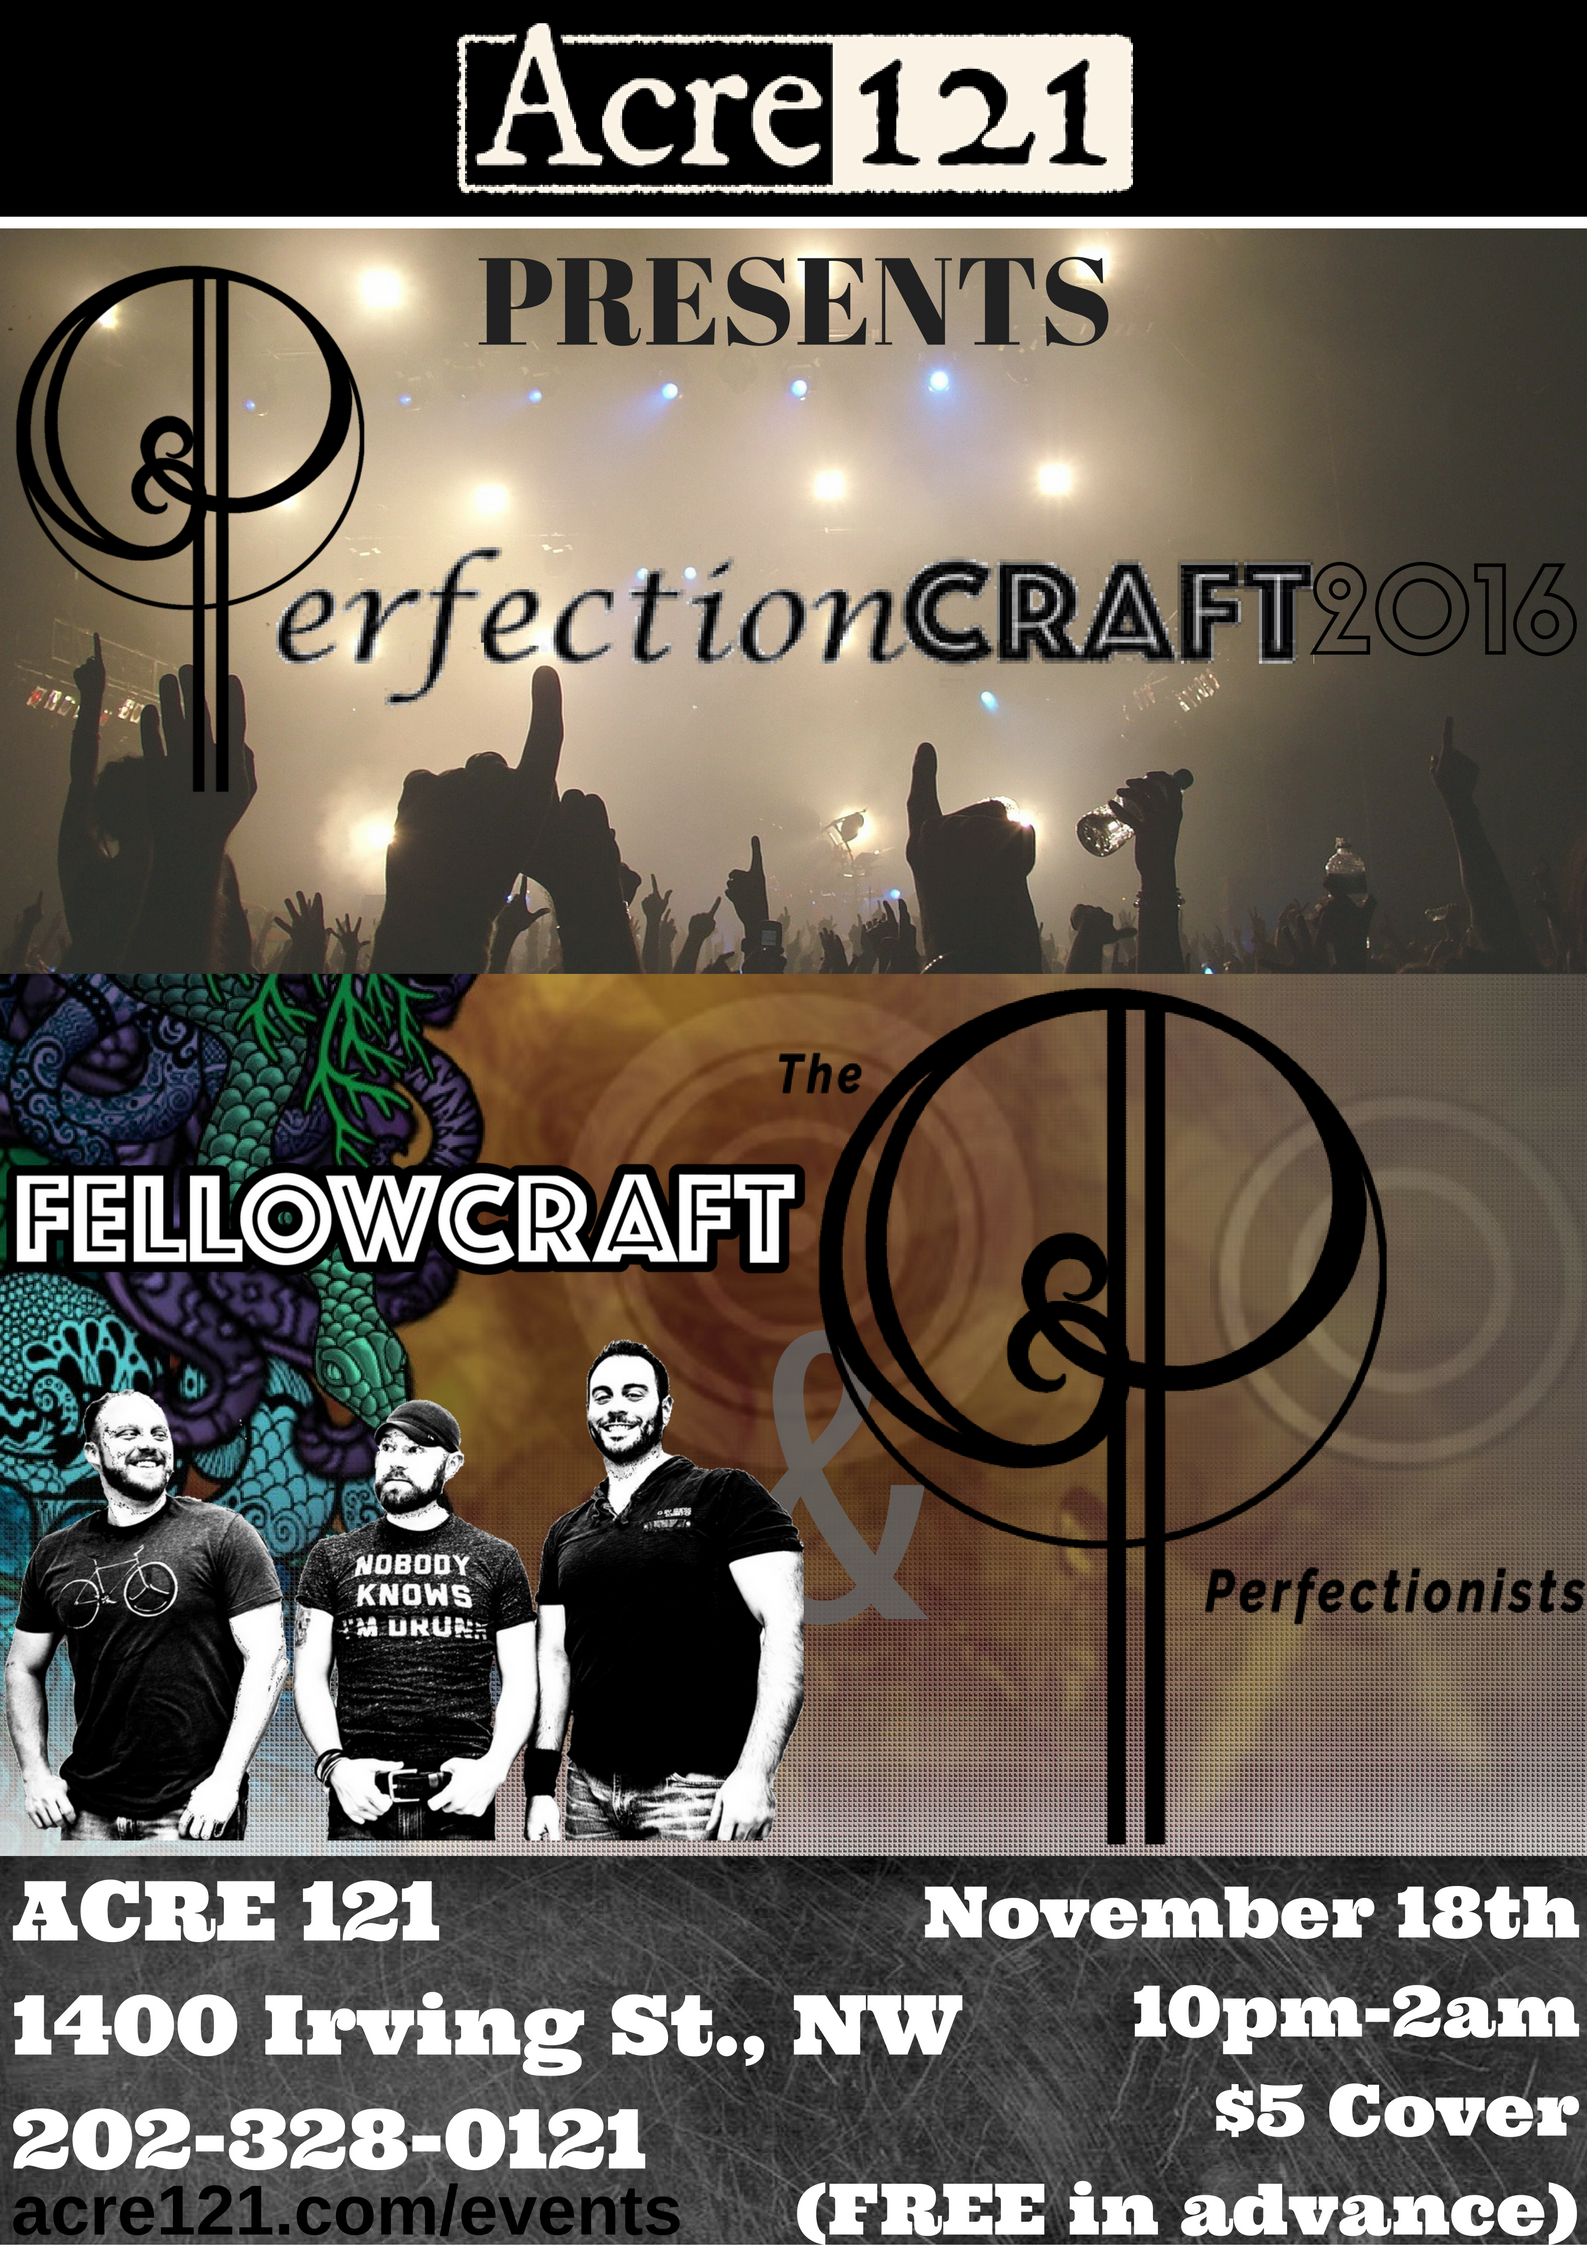 Perfectioncraft2016 Perfectionists Fellowcraft Acre 121